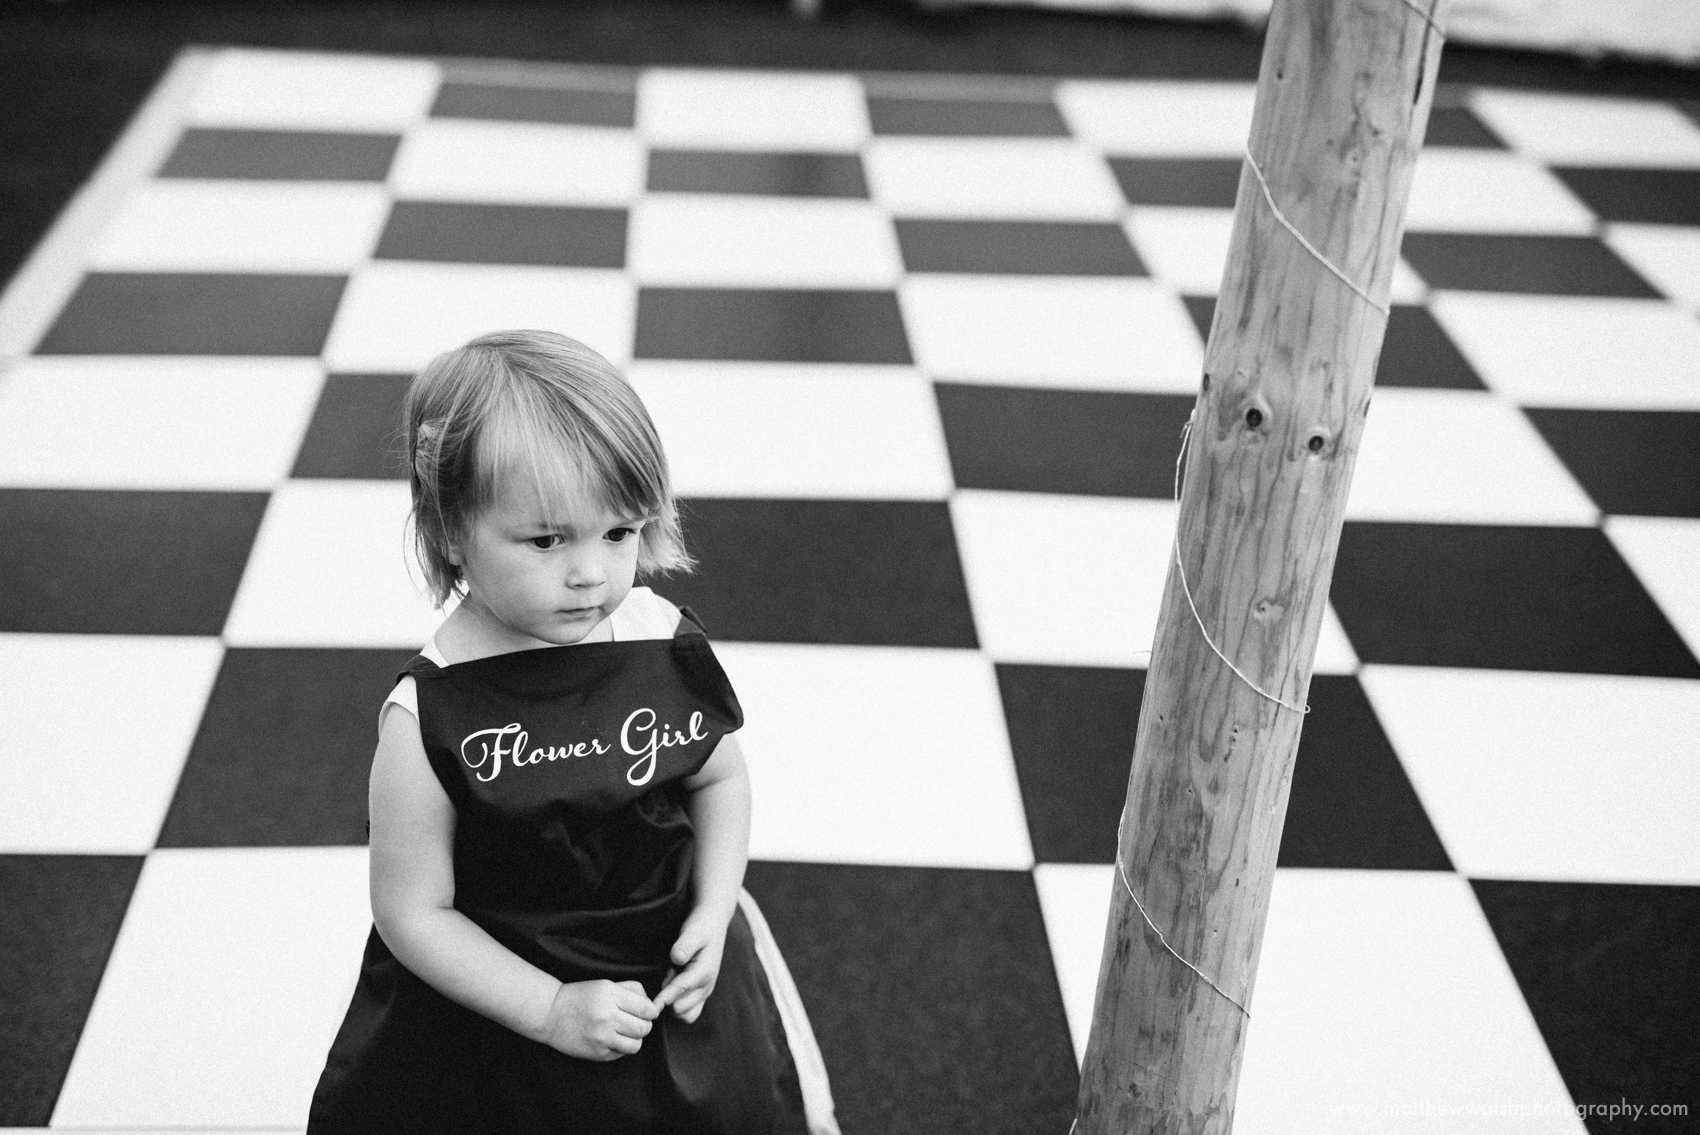 The little flower girl standing against the checked pattern of the dance floor